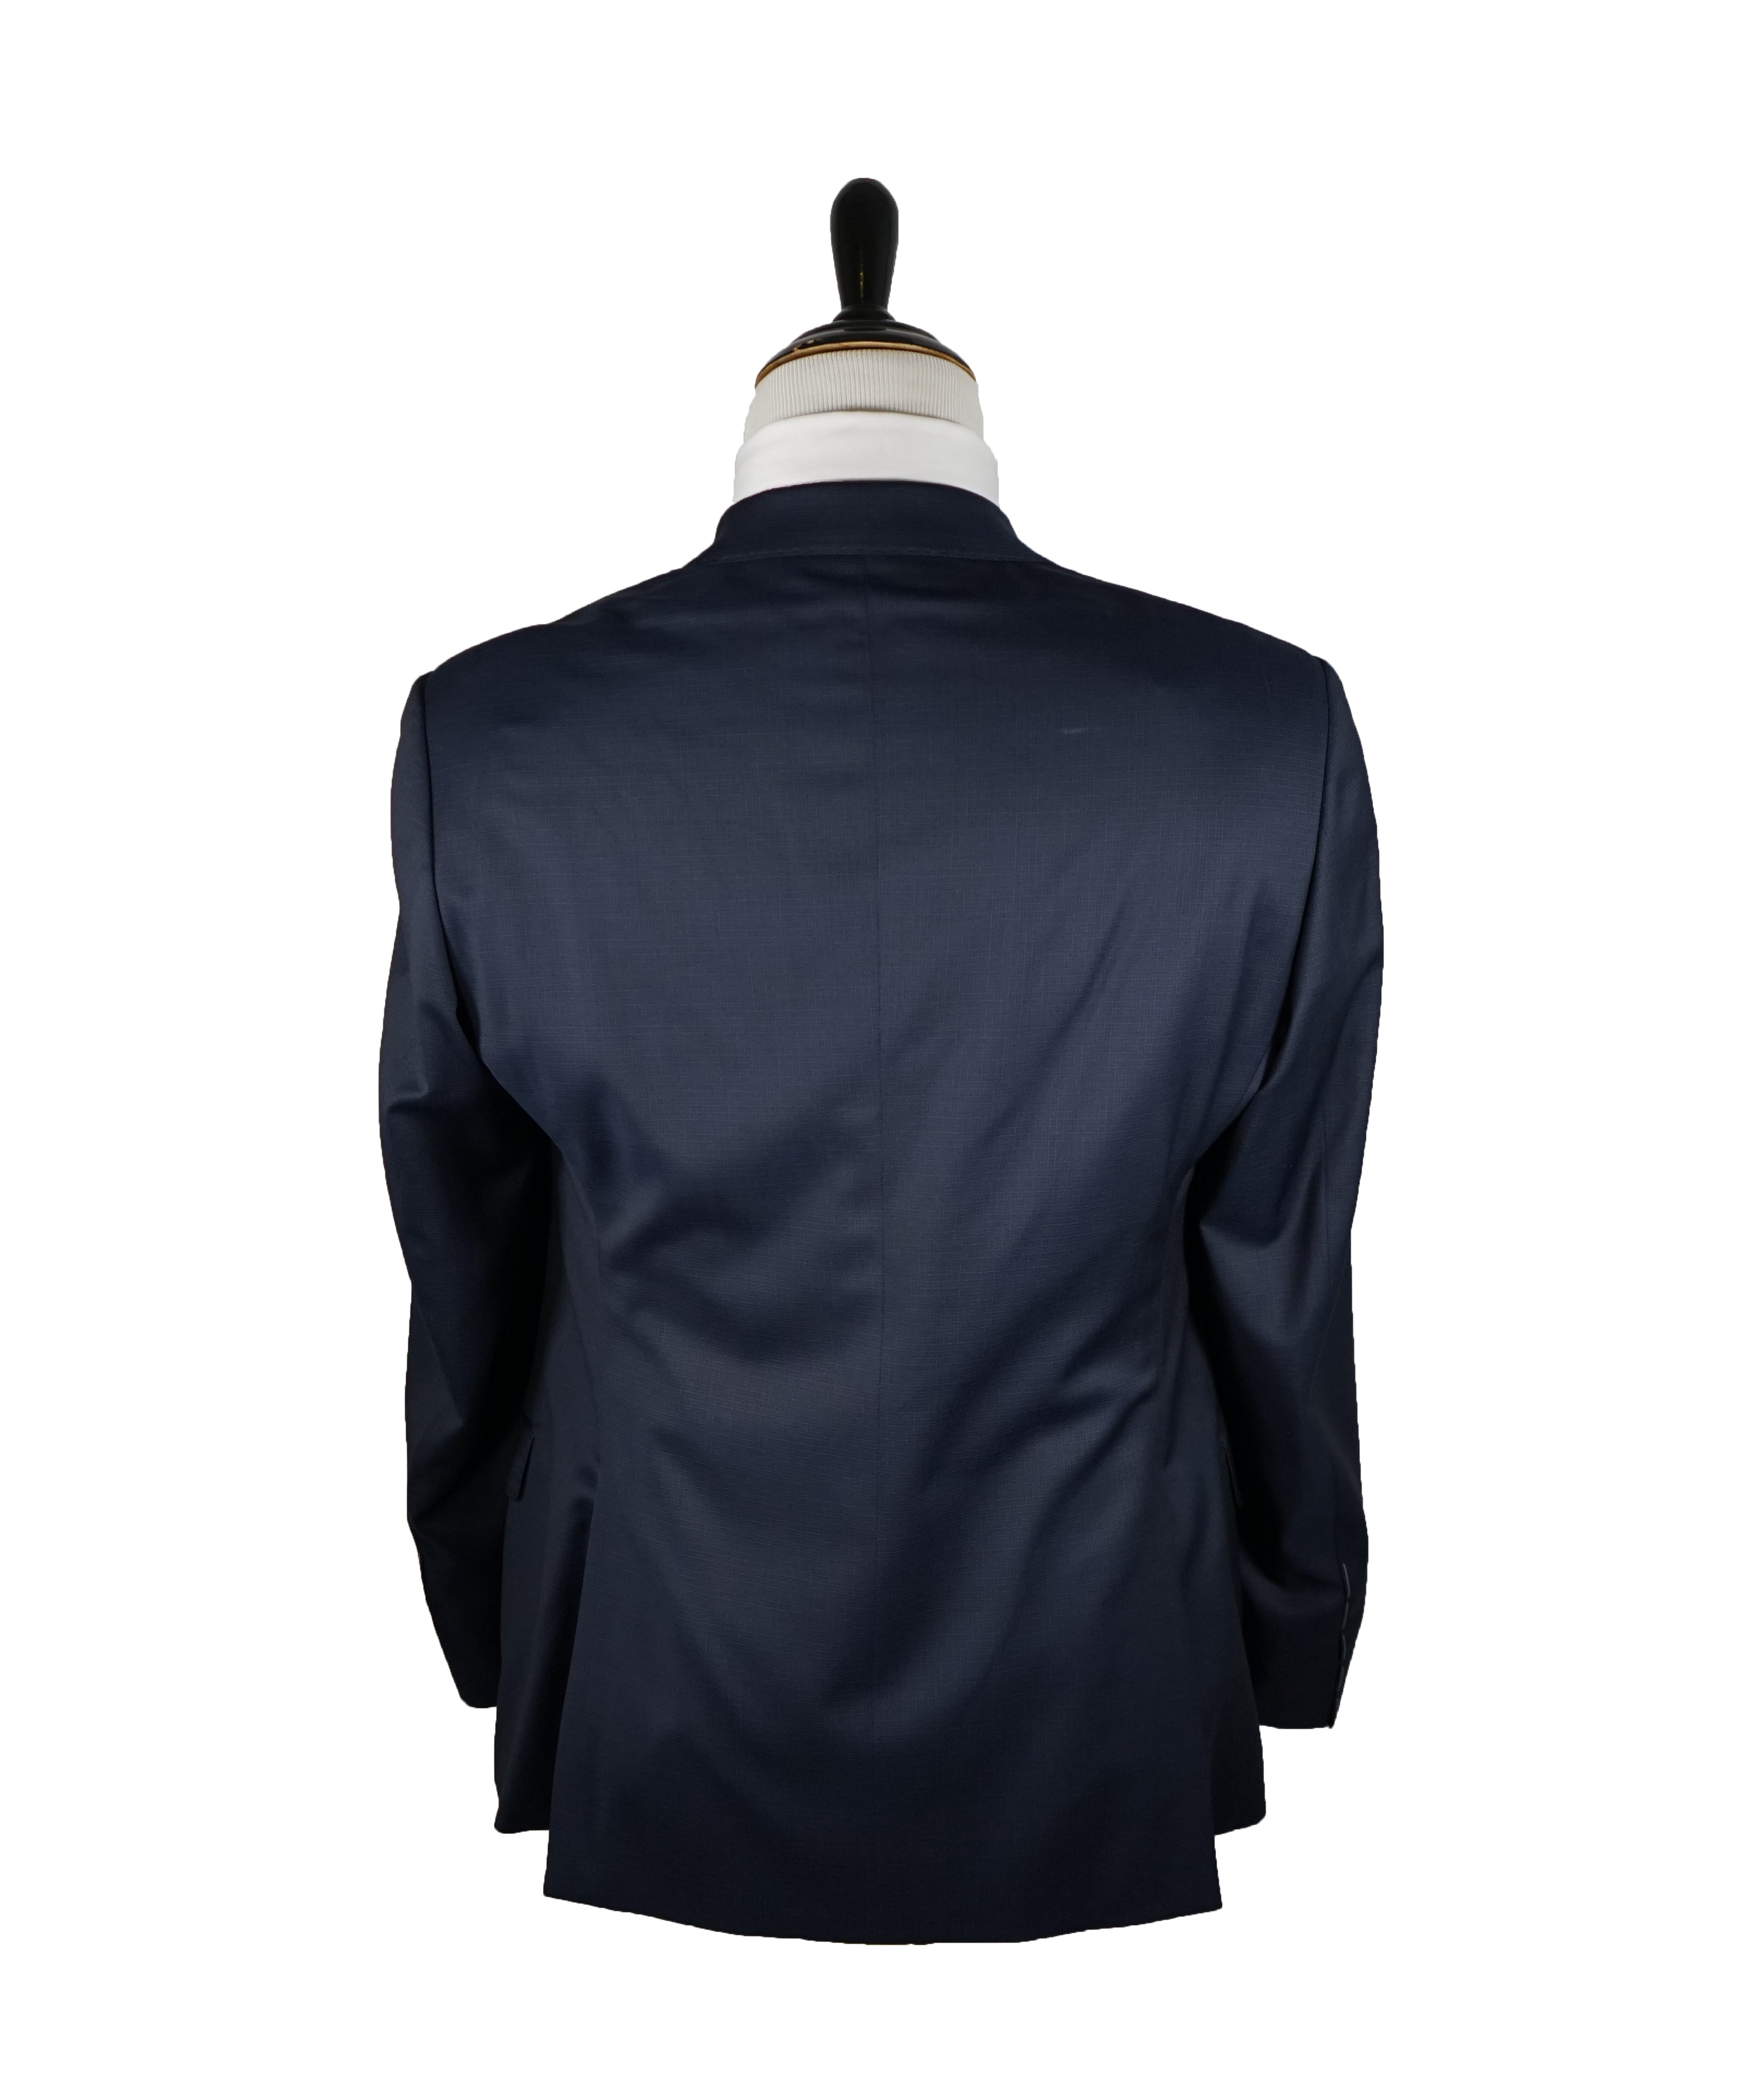 "GIORGIO ARMANI - Blue Check Basket Weave ""SOFT"" Collection Suit - 40R"